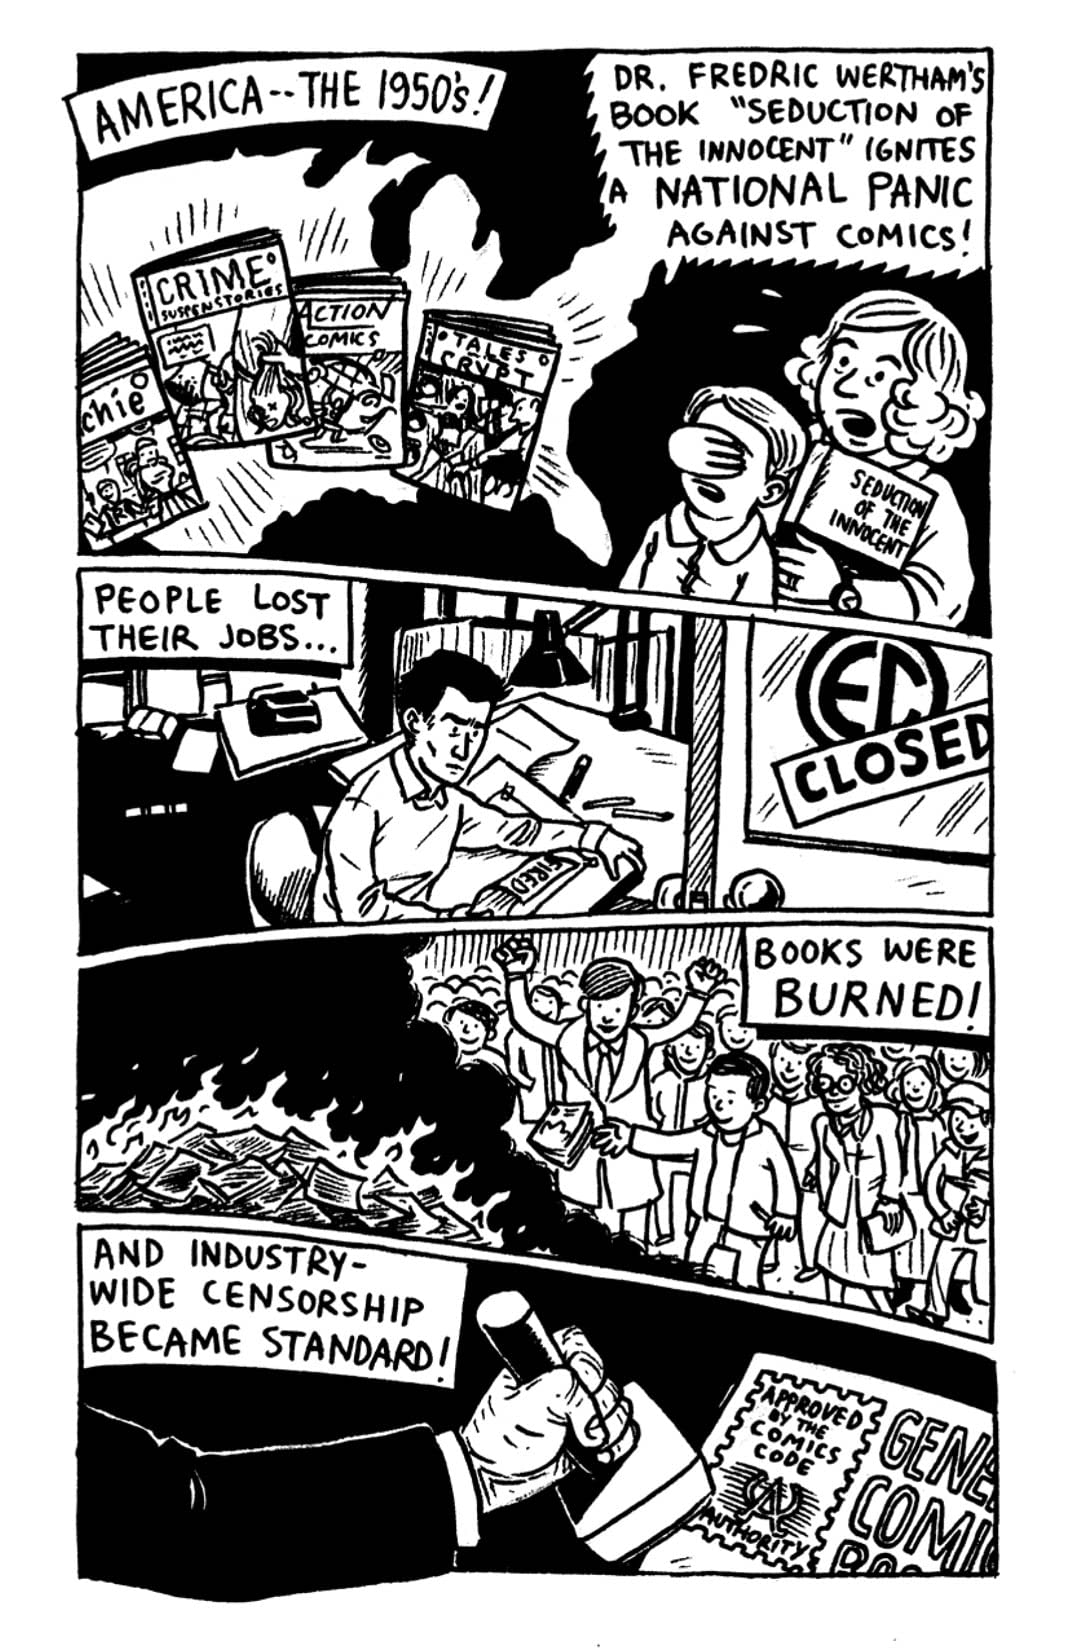 CBLDF Year in Review: 2011 - Censorship Nightmare